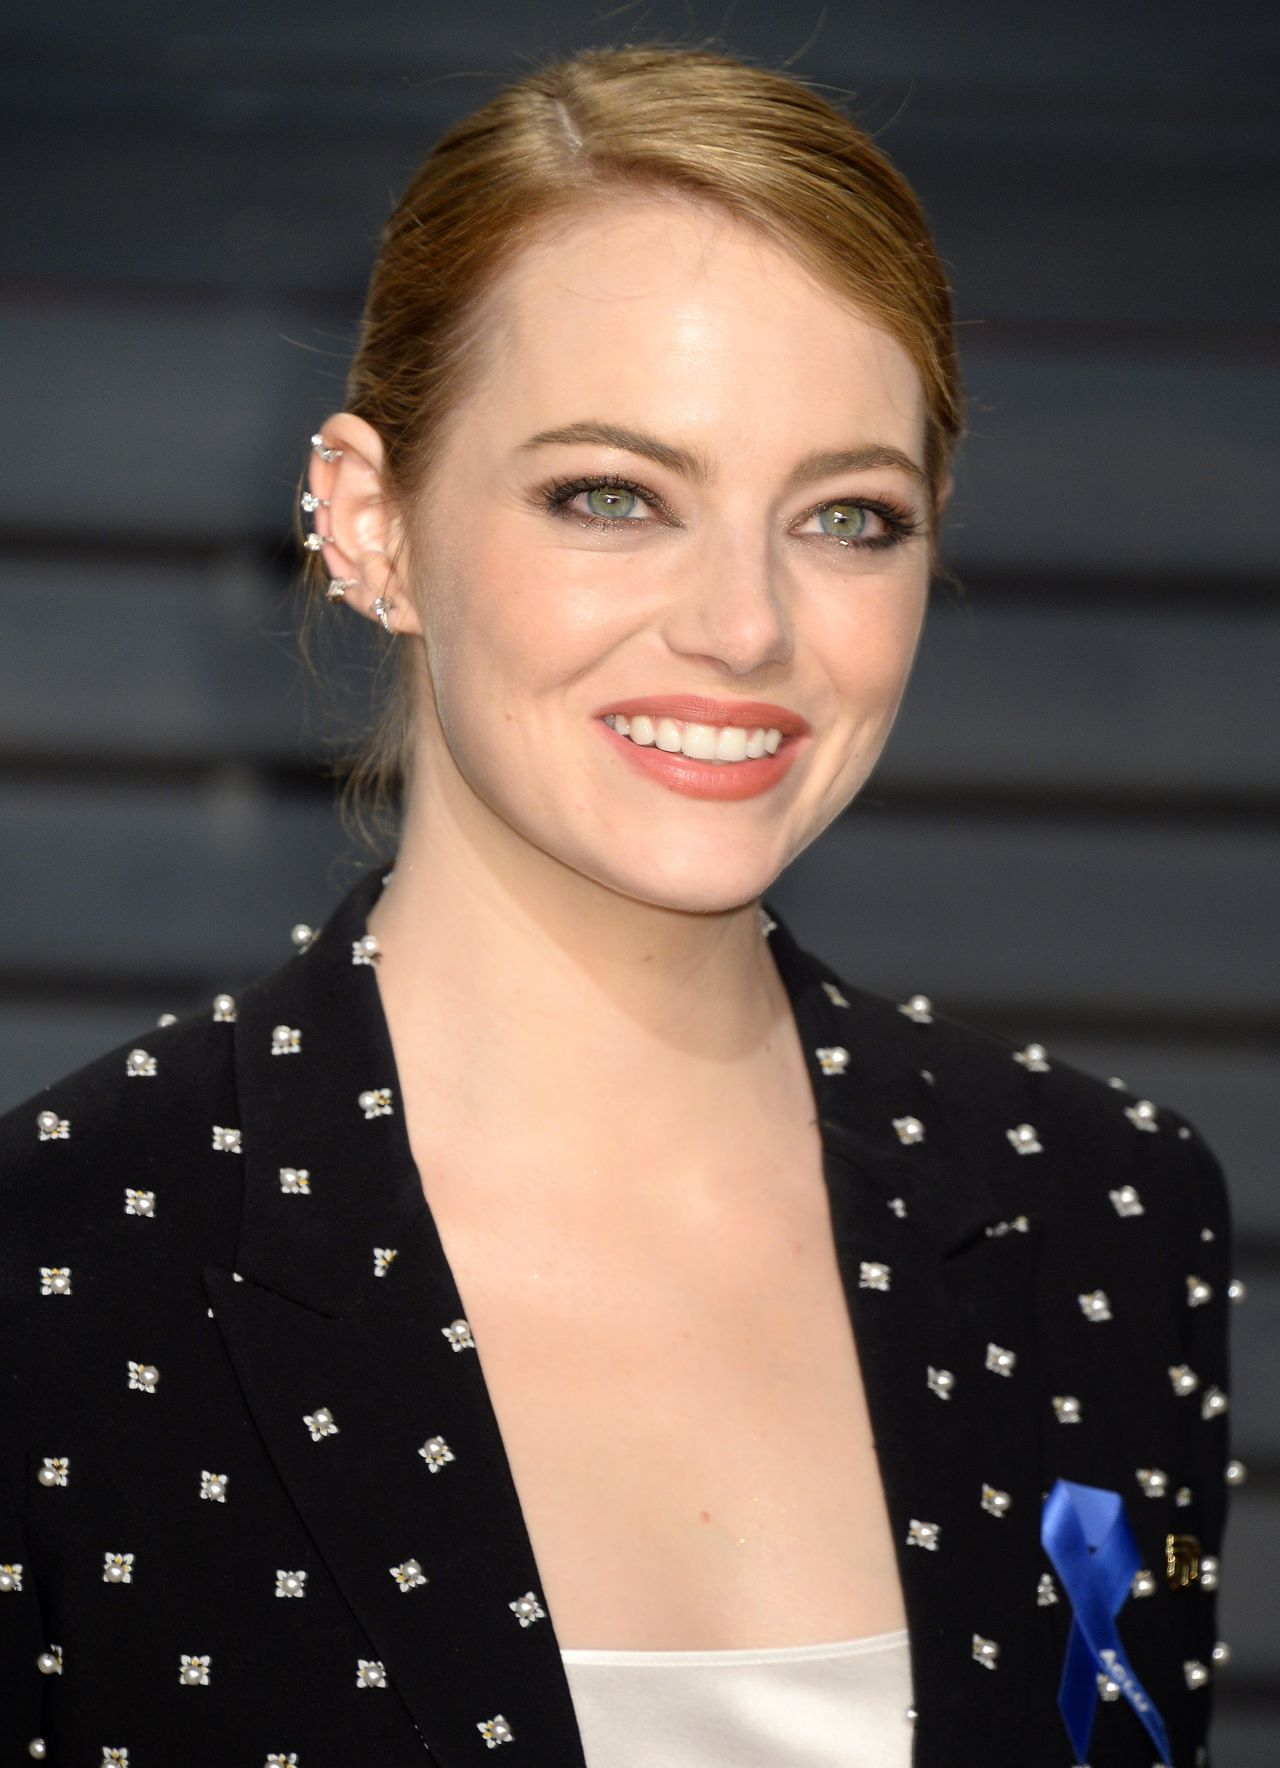 Emma Stone in Givenchy at 2017 Vanity Fair Oscar Party in Los Angeles Check more at https://fashnberry.com/2017/02/emma-stone-in-givenchy-at-2017-vanity-fair-oscar-party-in-los-angeles/